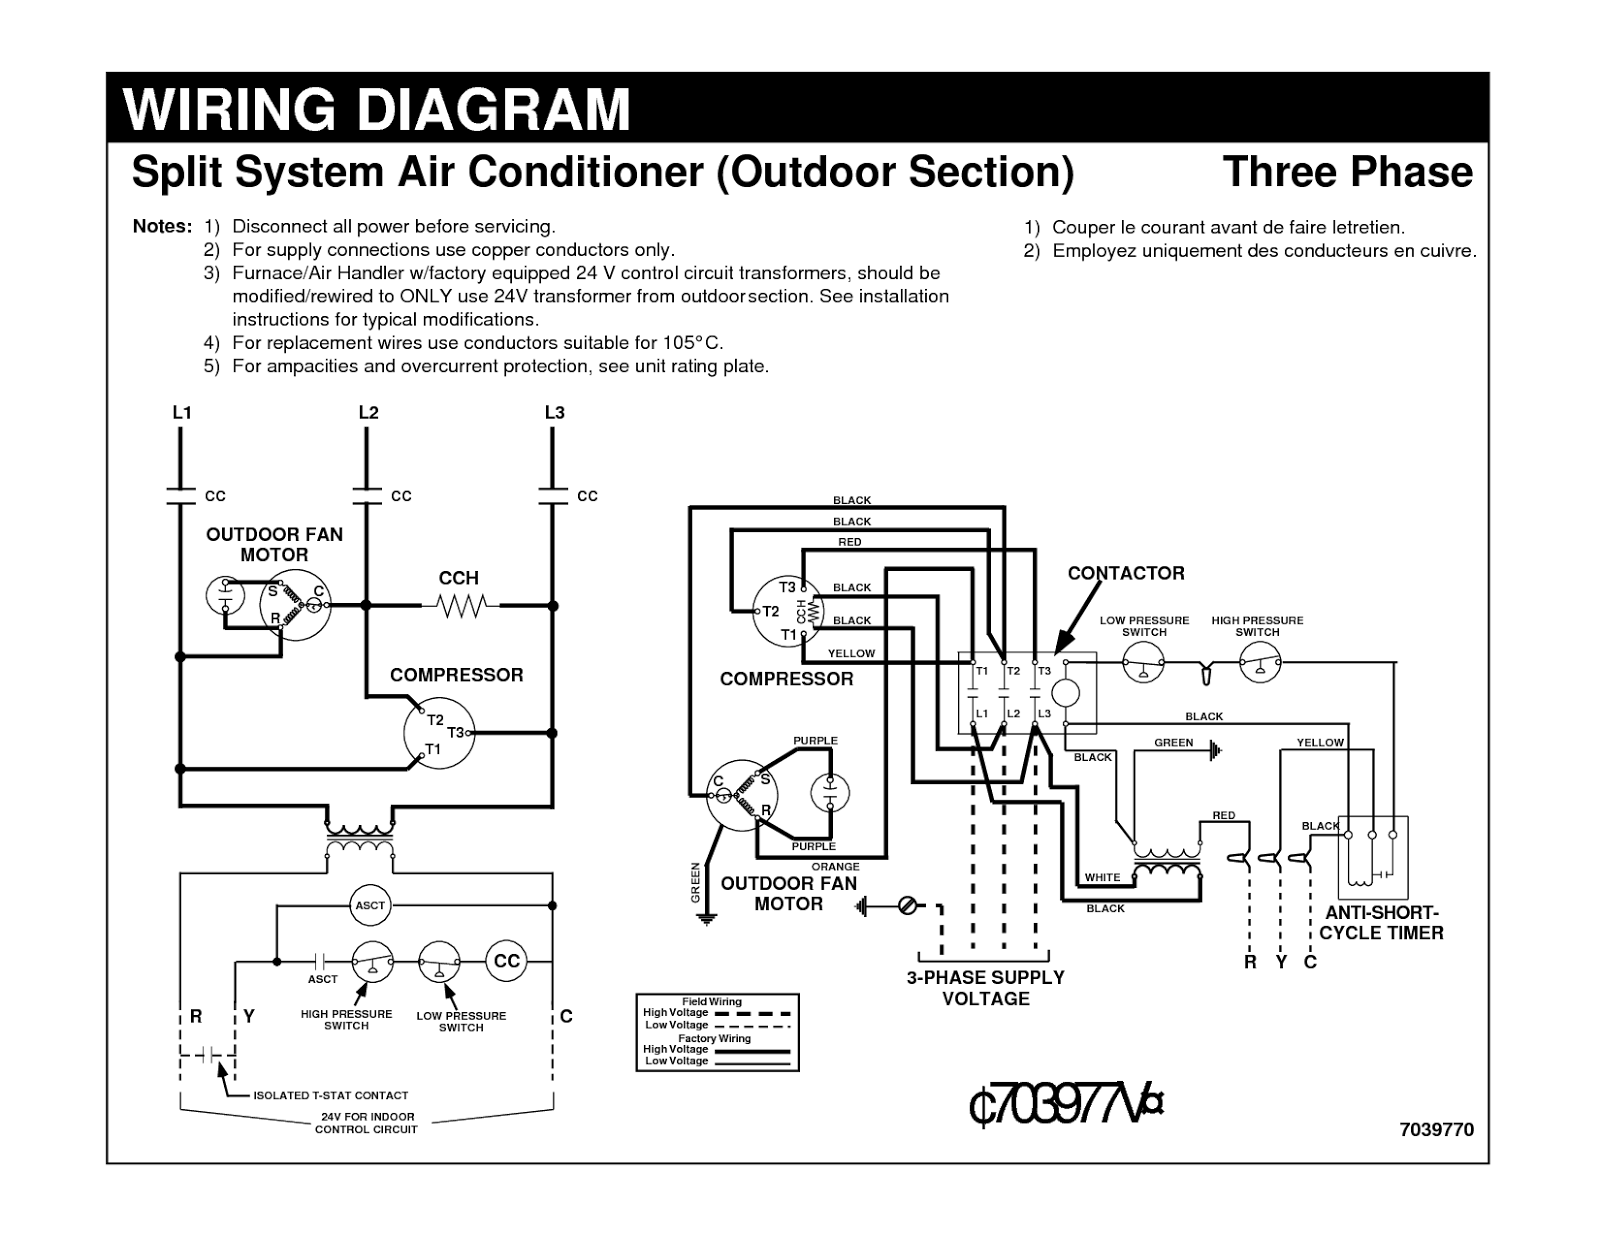 wiring+diagram+in+the+user+manual red dot air conditioner wiring diagram air handler wiring diagram 1999 Sedan Deville at nearapp.co